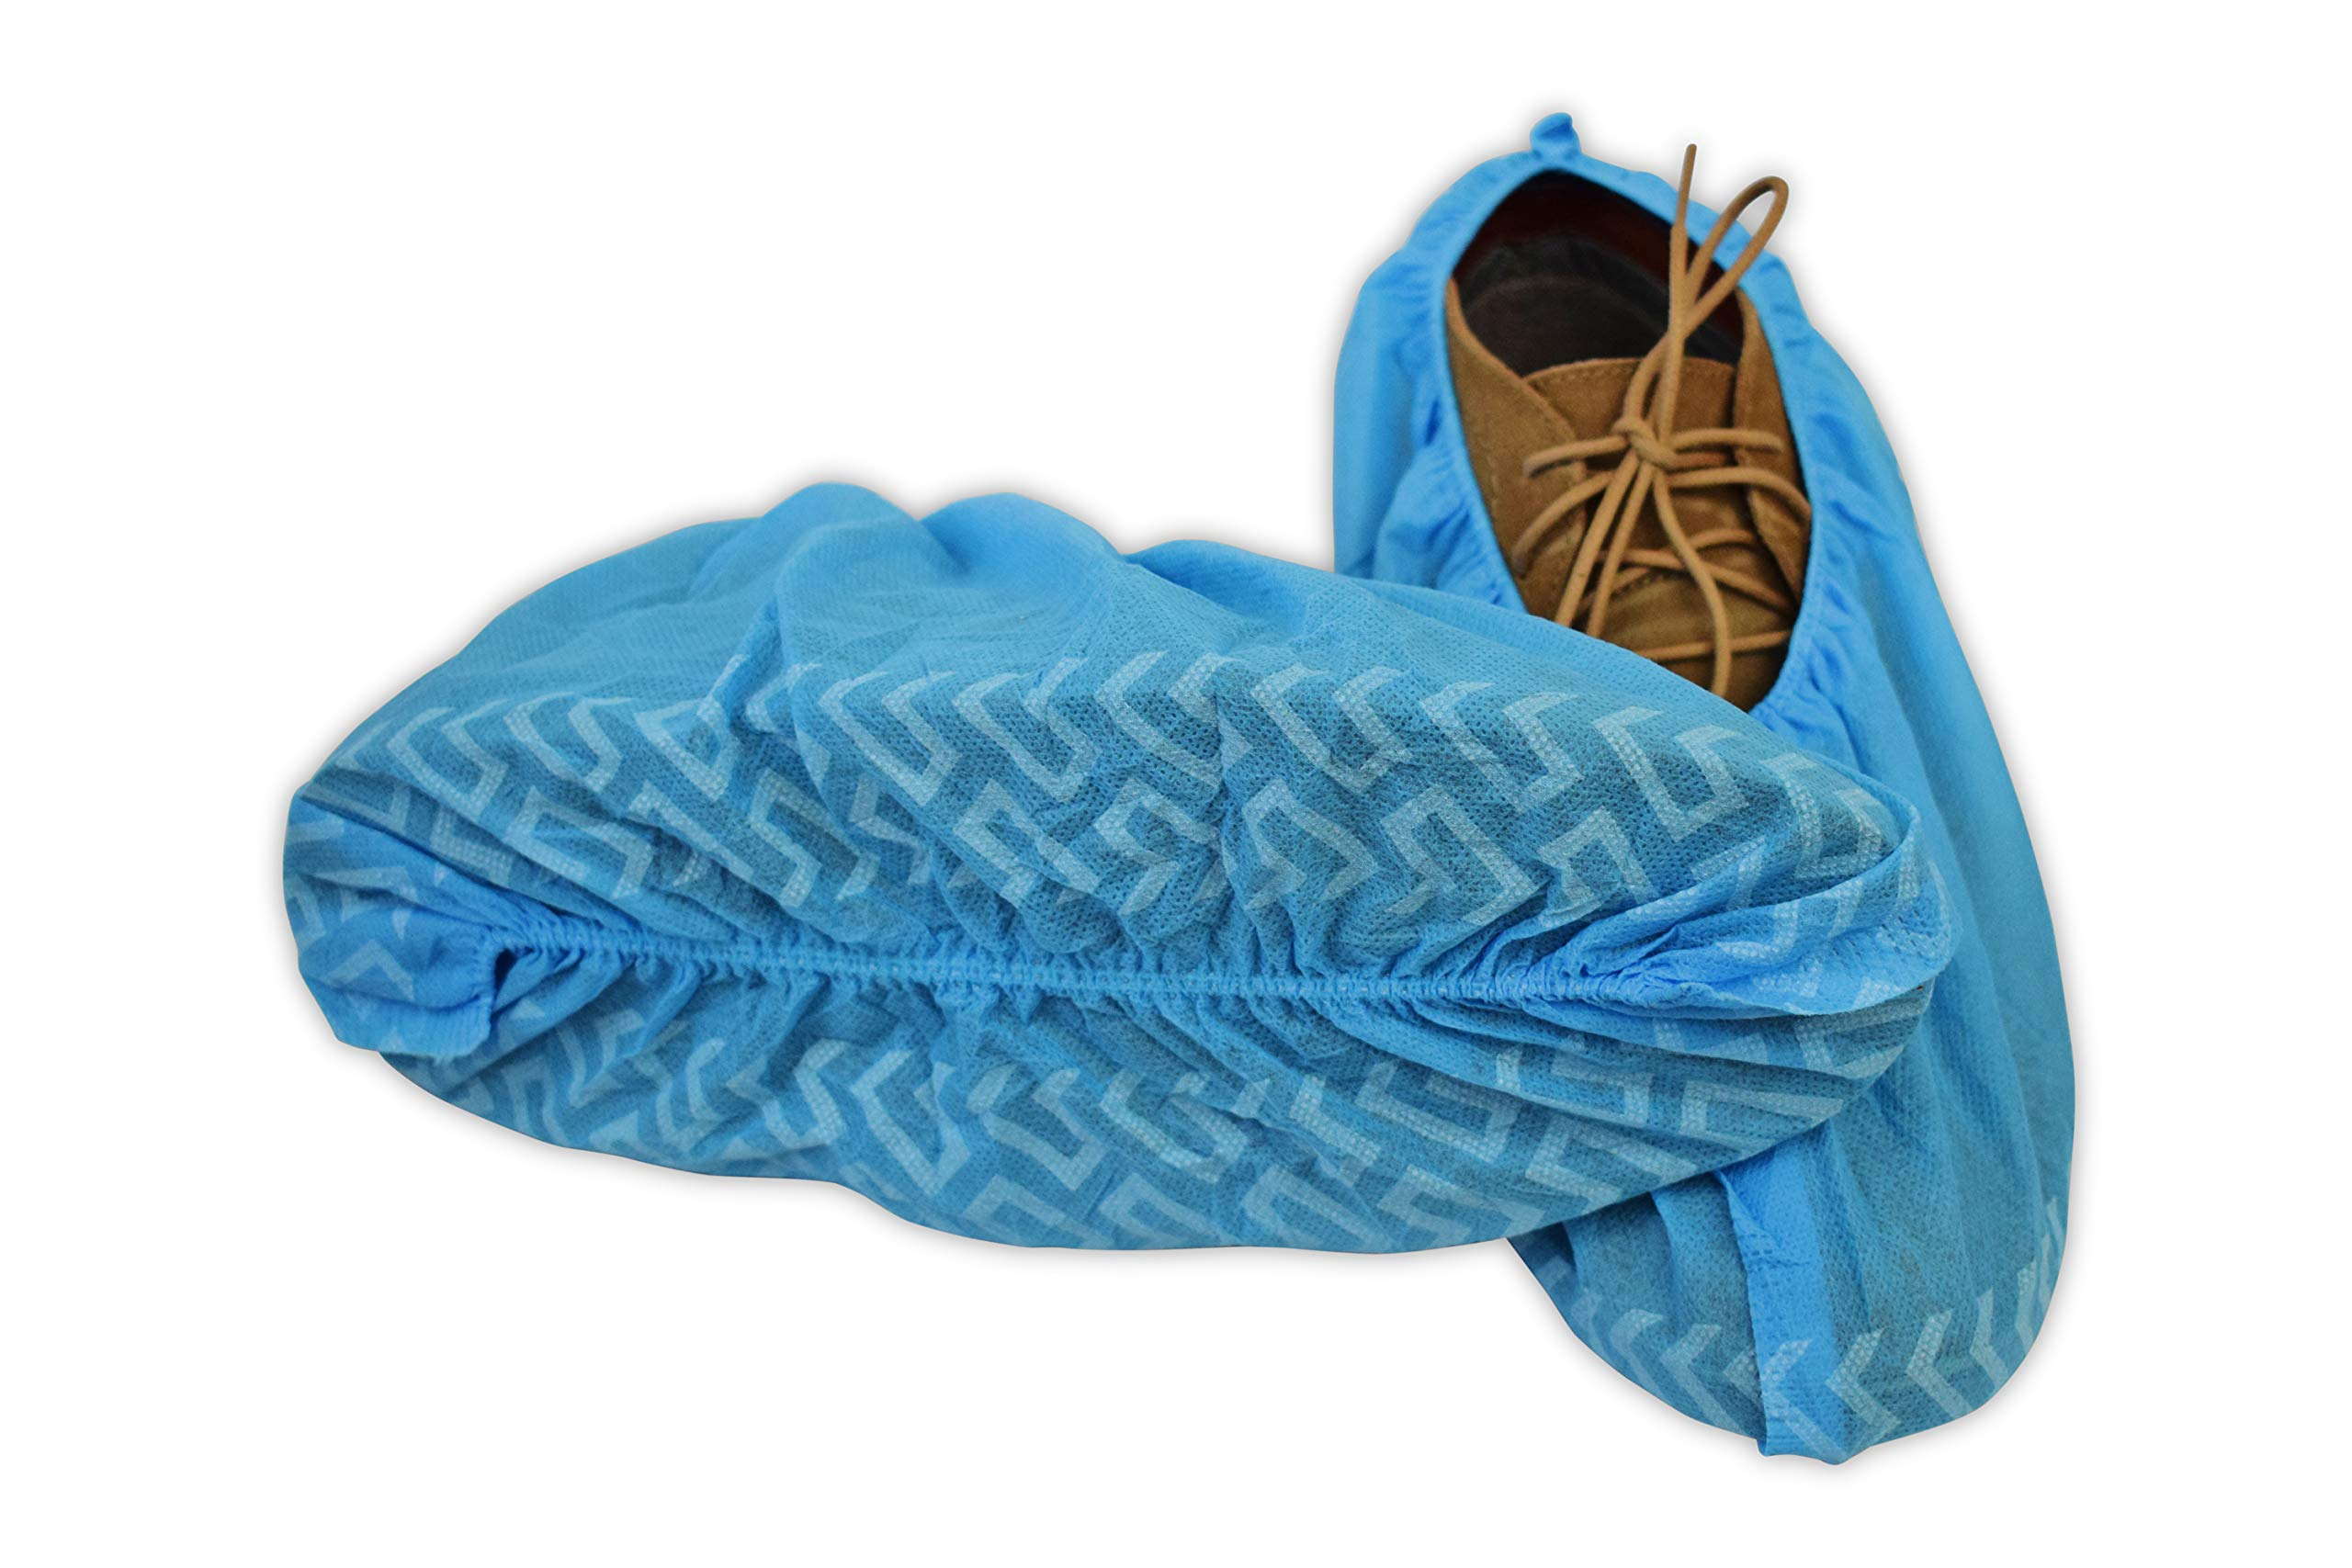 BER Products Disposable Shoe Covers, Non Slip, For Boots and Shoes, Professional Medical Grade, Recyclable, Indoors and Outdoors Use, Durable Interwoven Booties 100-Pack